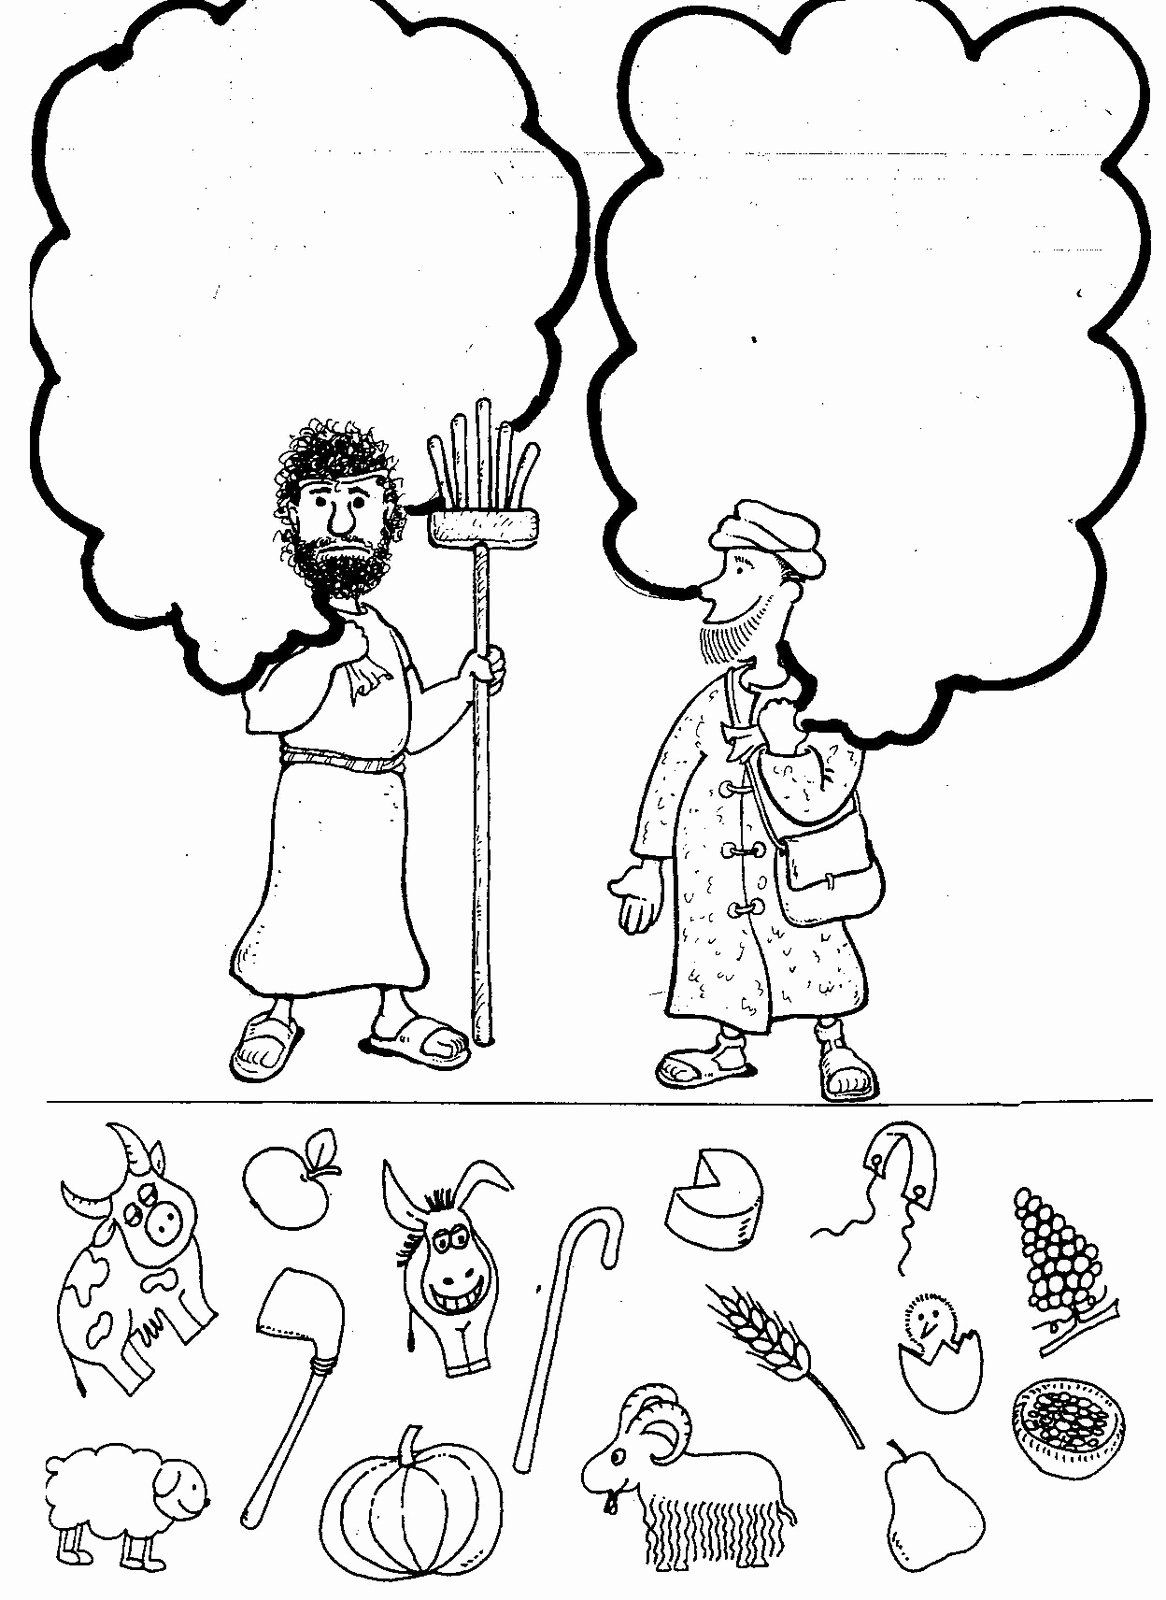 24 Cain And Abel Coloring Page In